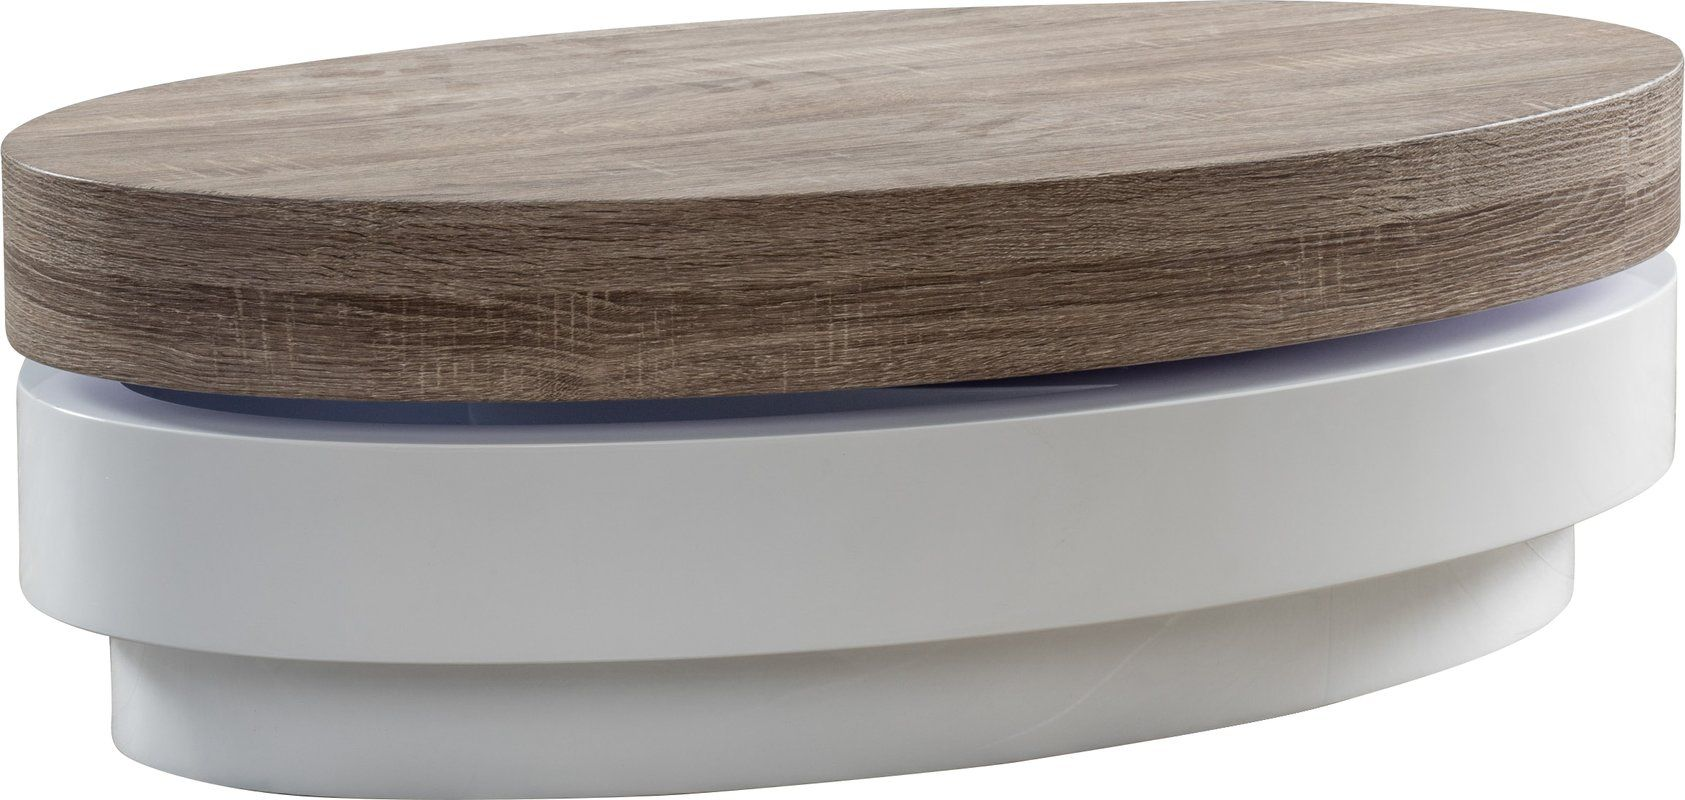 The Broads Oval Mod Rotatable Coffee Table With Sonoma Top Offers A Clear  Late 60u0027s Vibe